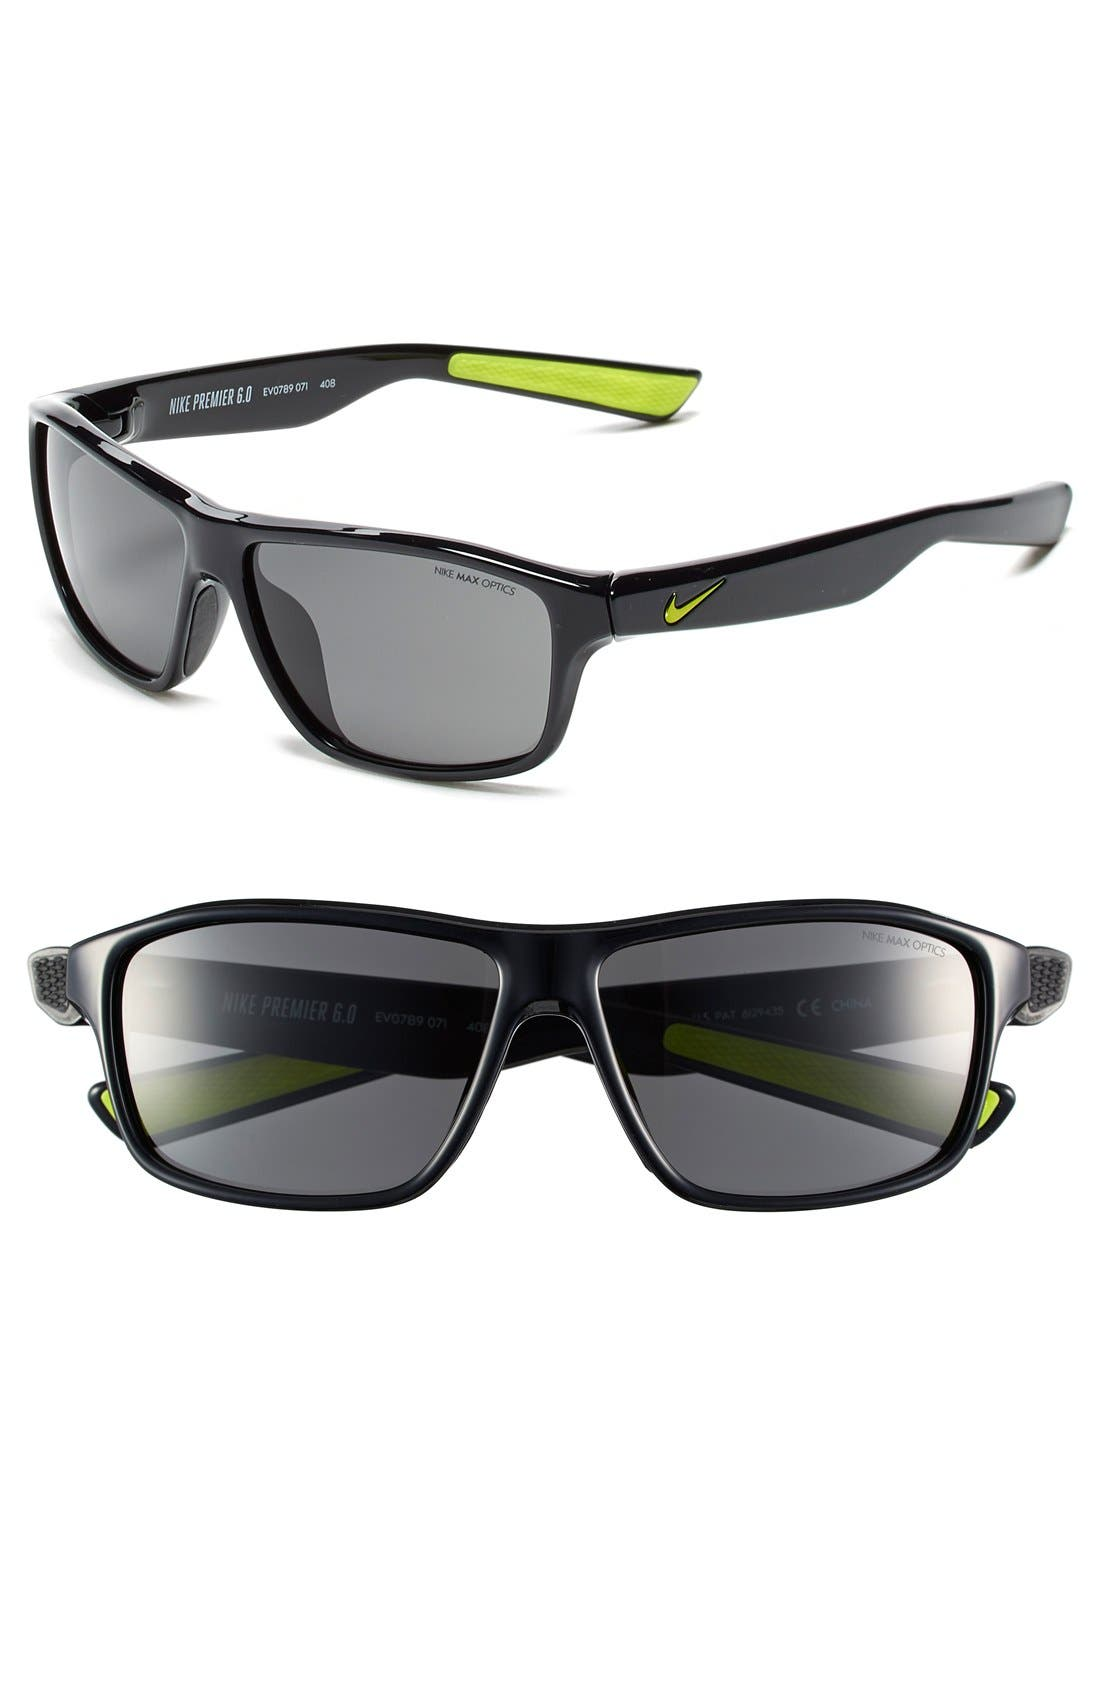 NIKE 59mm Premier 6.0 Performance Sunglasses